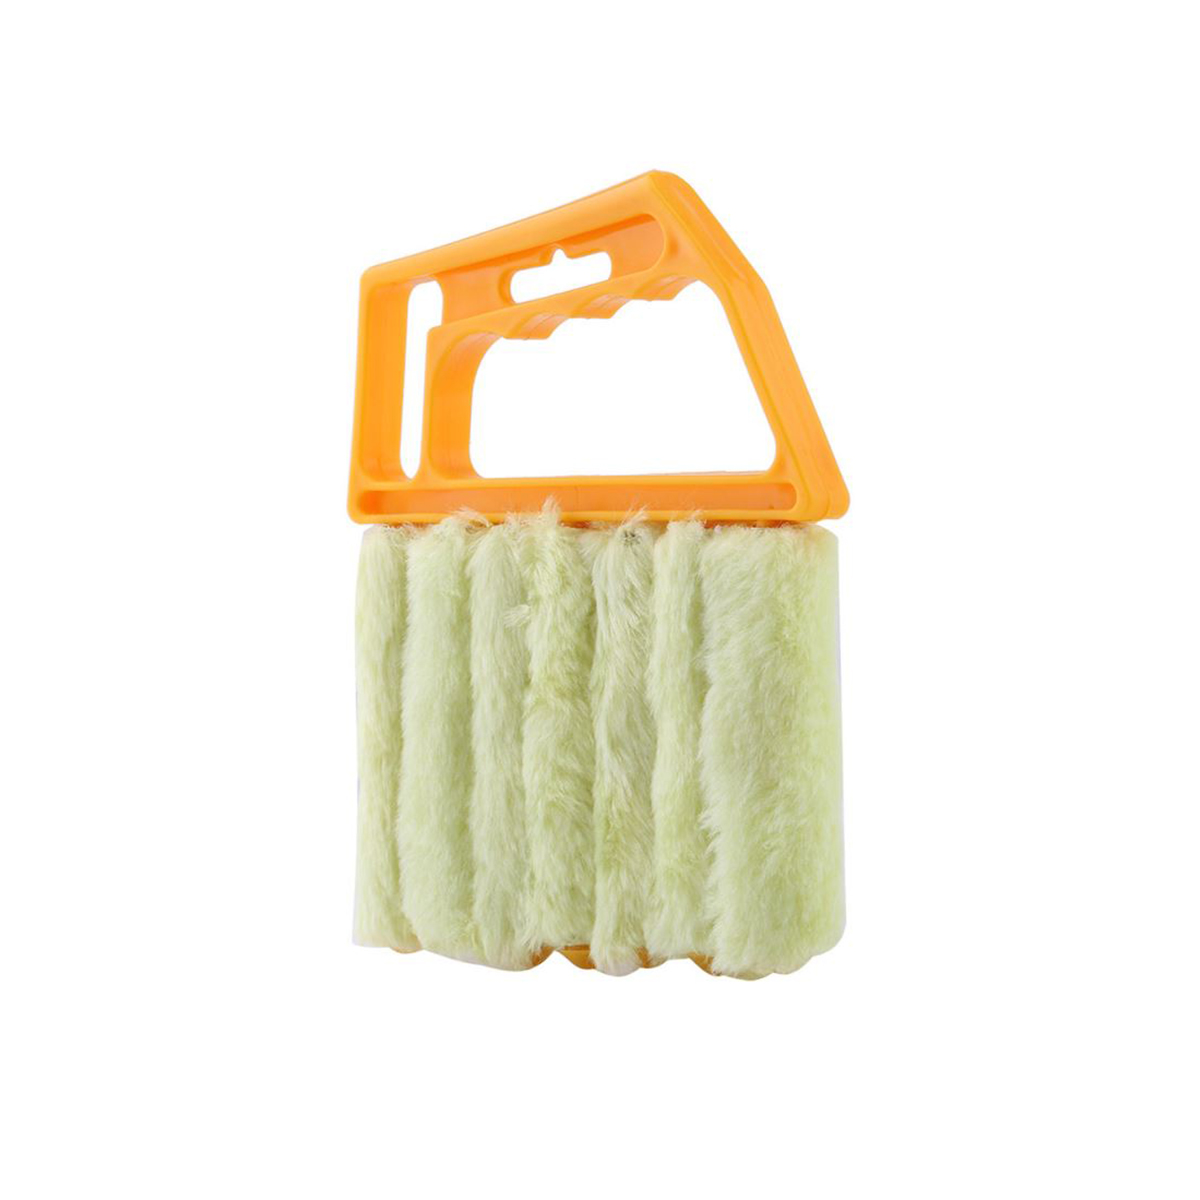 IAG-Microfiber-Window-Cleaning-Brush-2-1200×1200